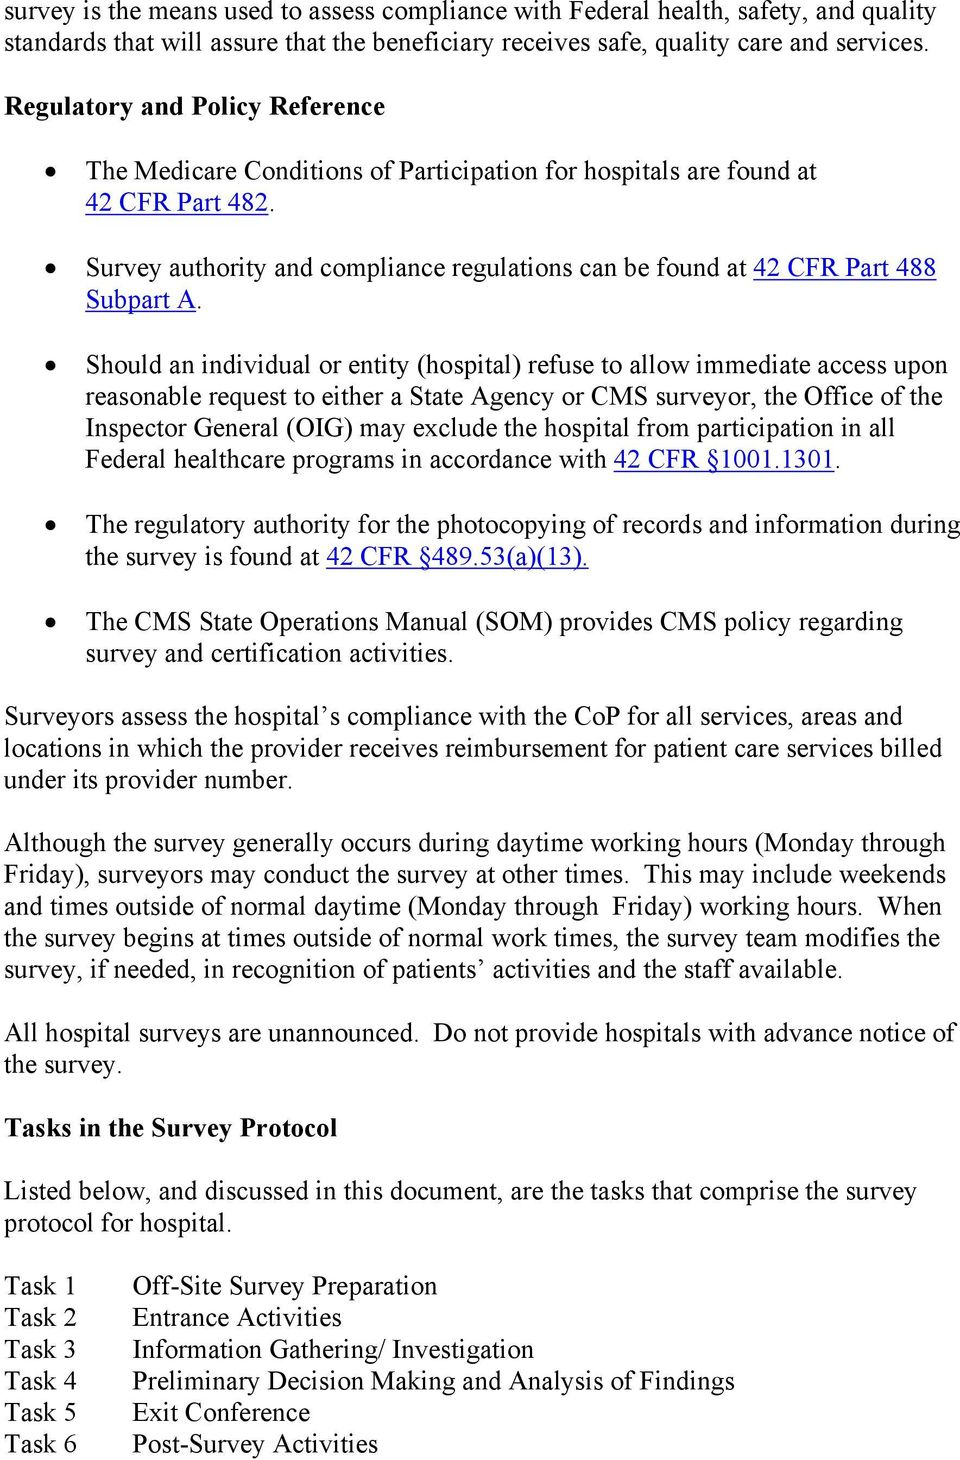 Survey authority and compliance regulations can be found at 42 CFR Part 488 Subpart A.